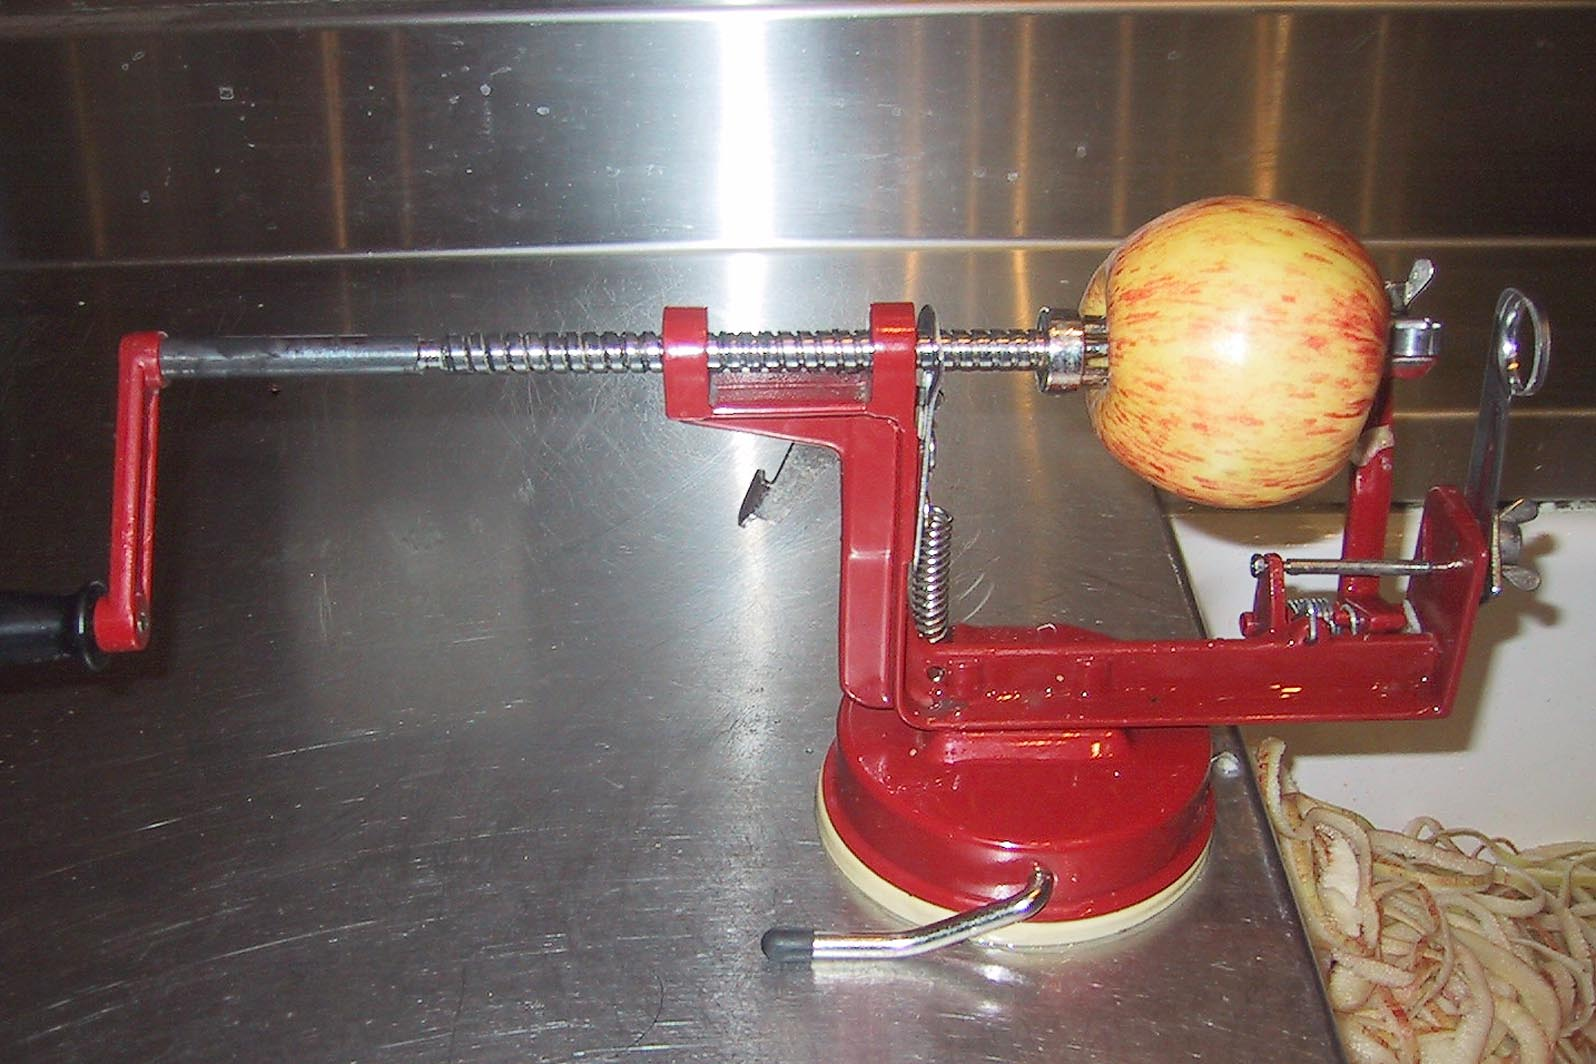 The magical apple machine